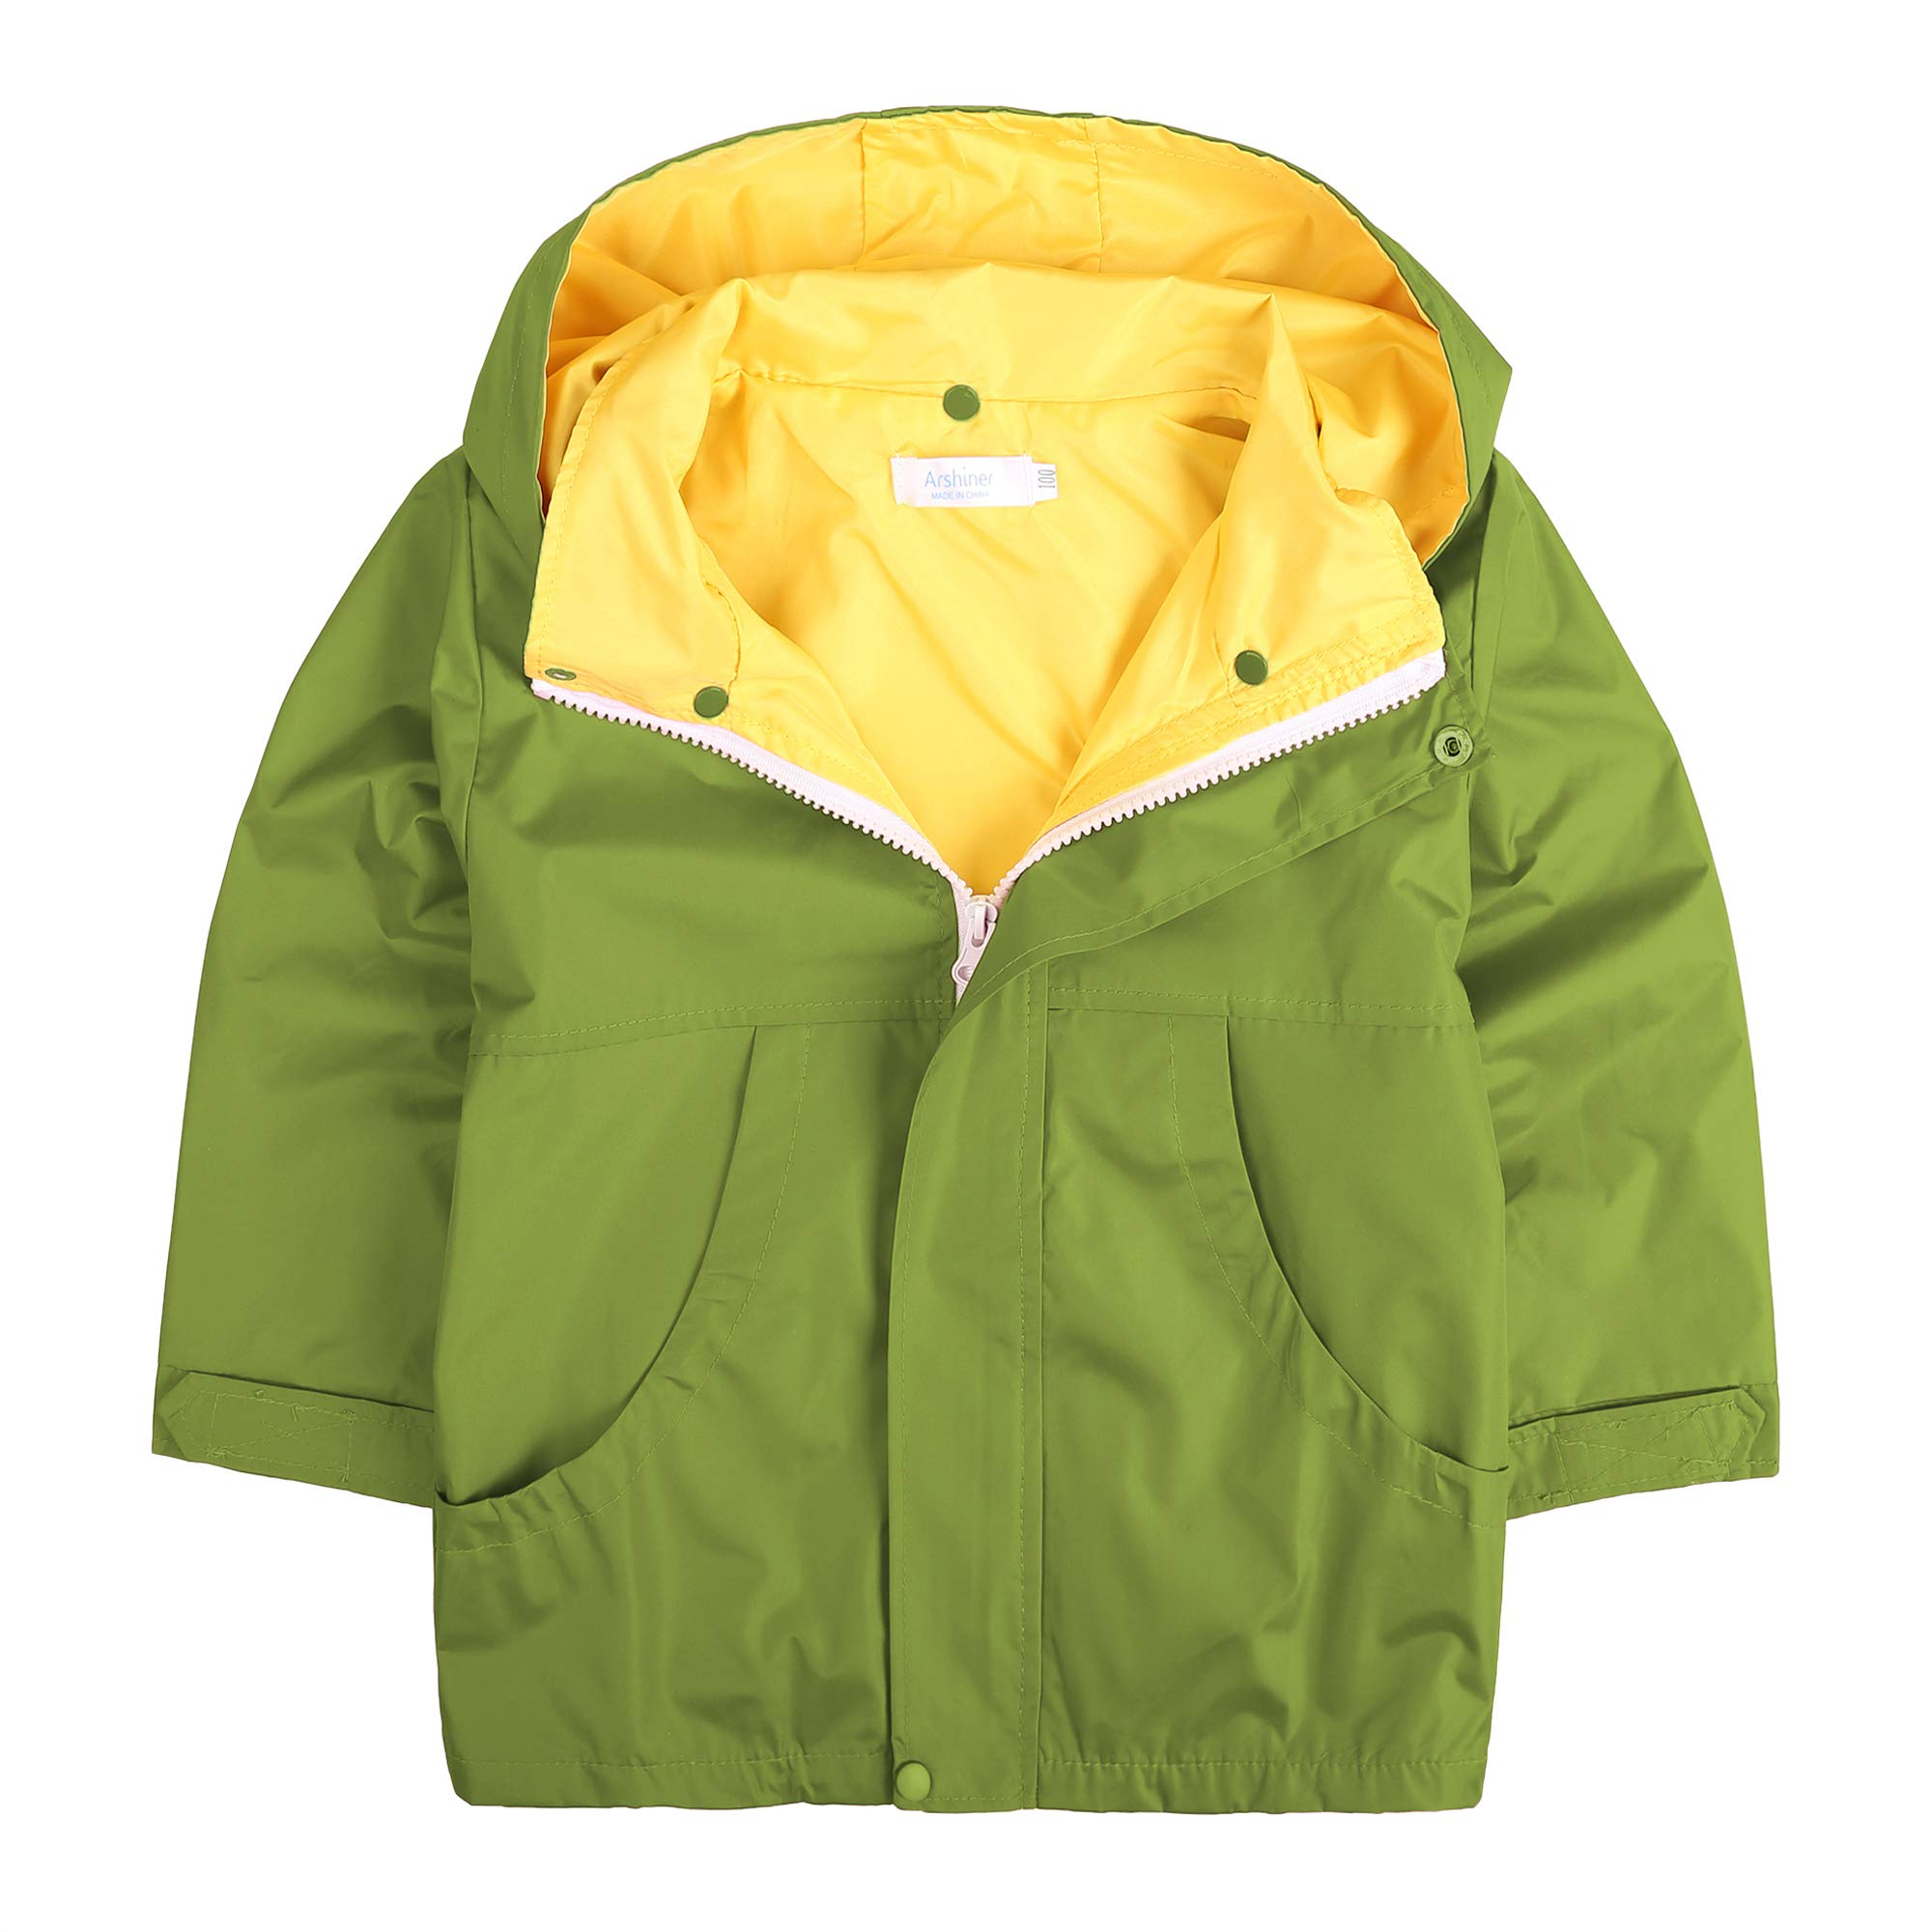 Arshiner Girls Waterproof Raincoats Kids Hooded Rain Jacket Olive Green 120